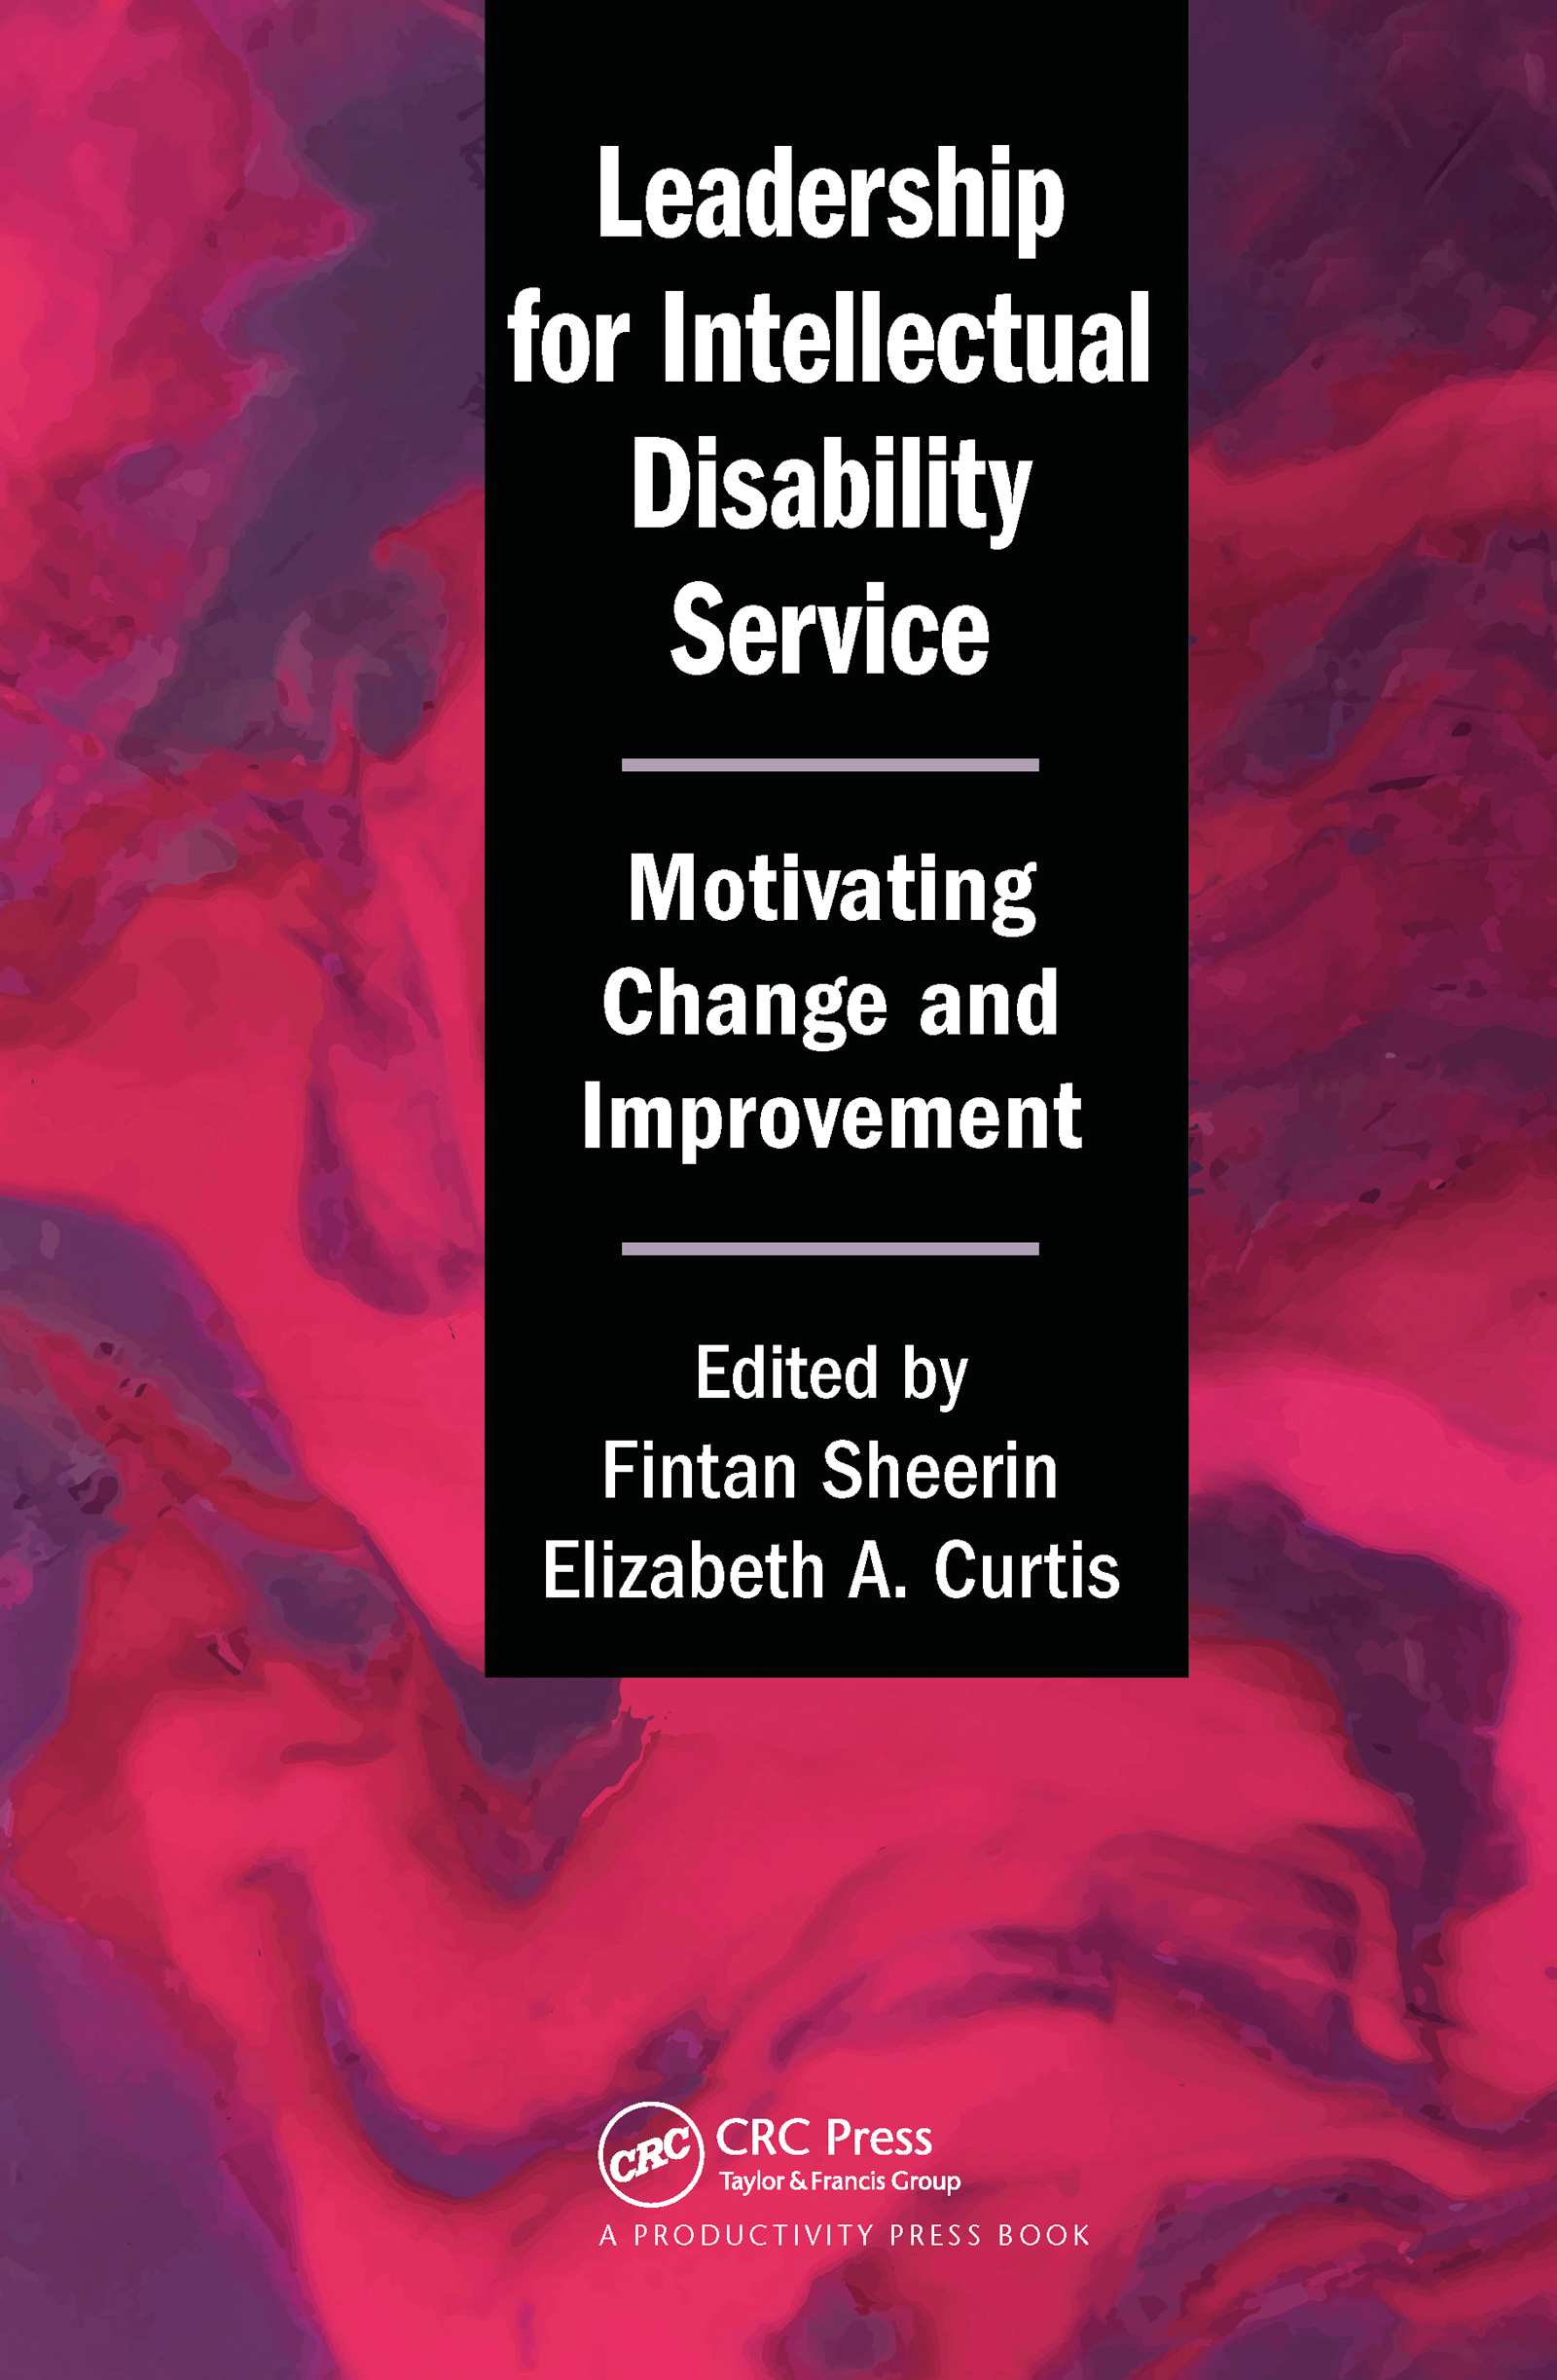 Leadership for Intellectual Disability Service